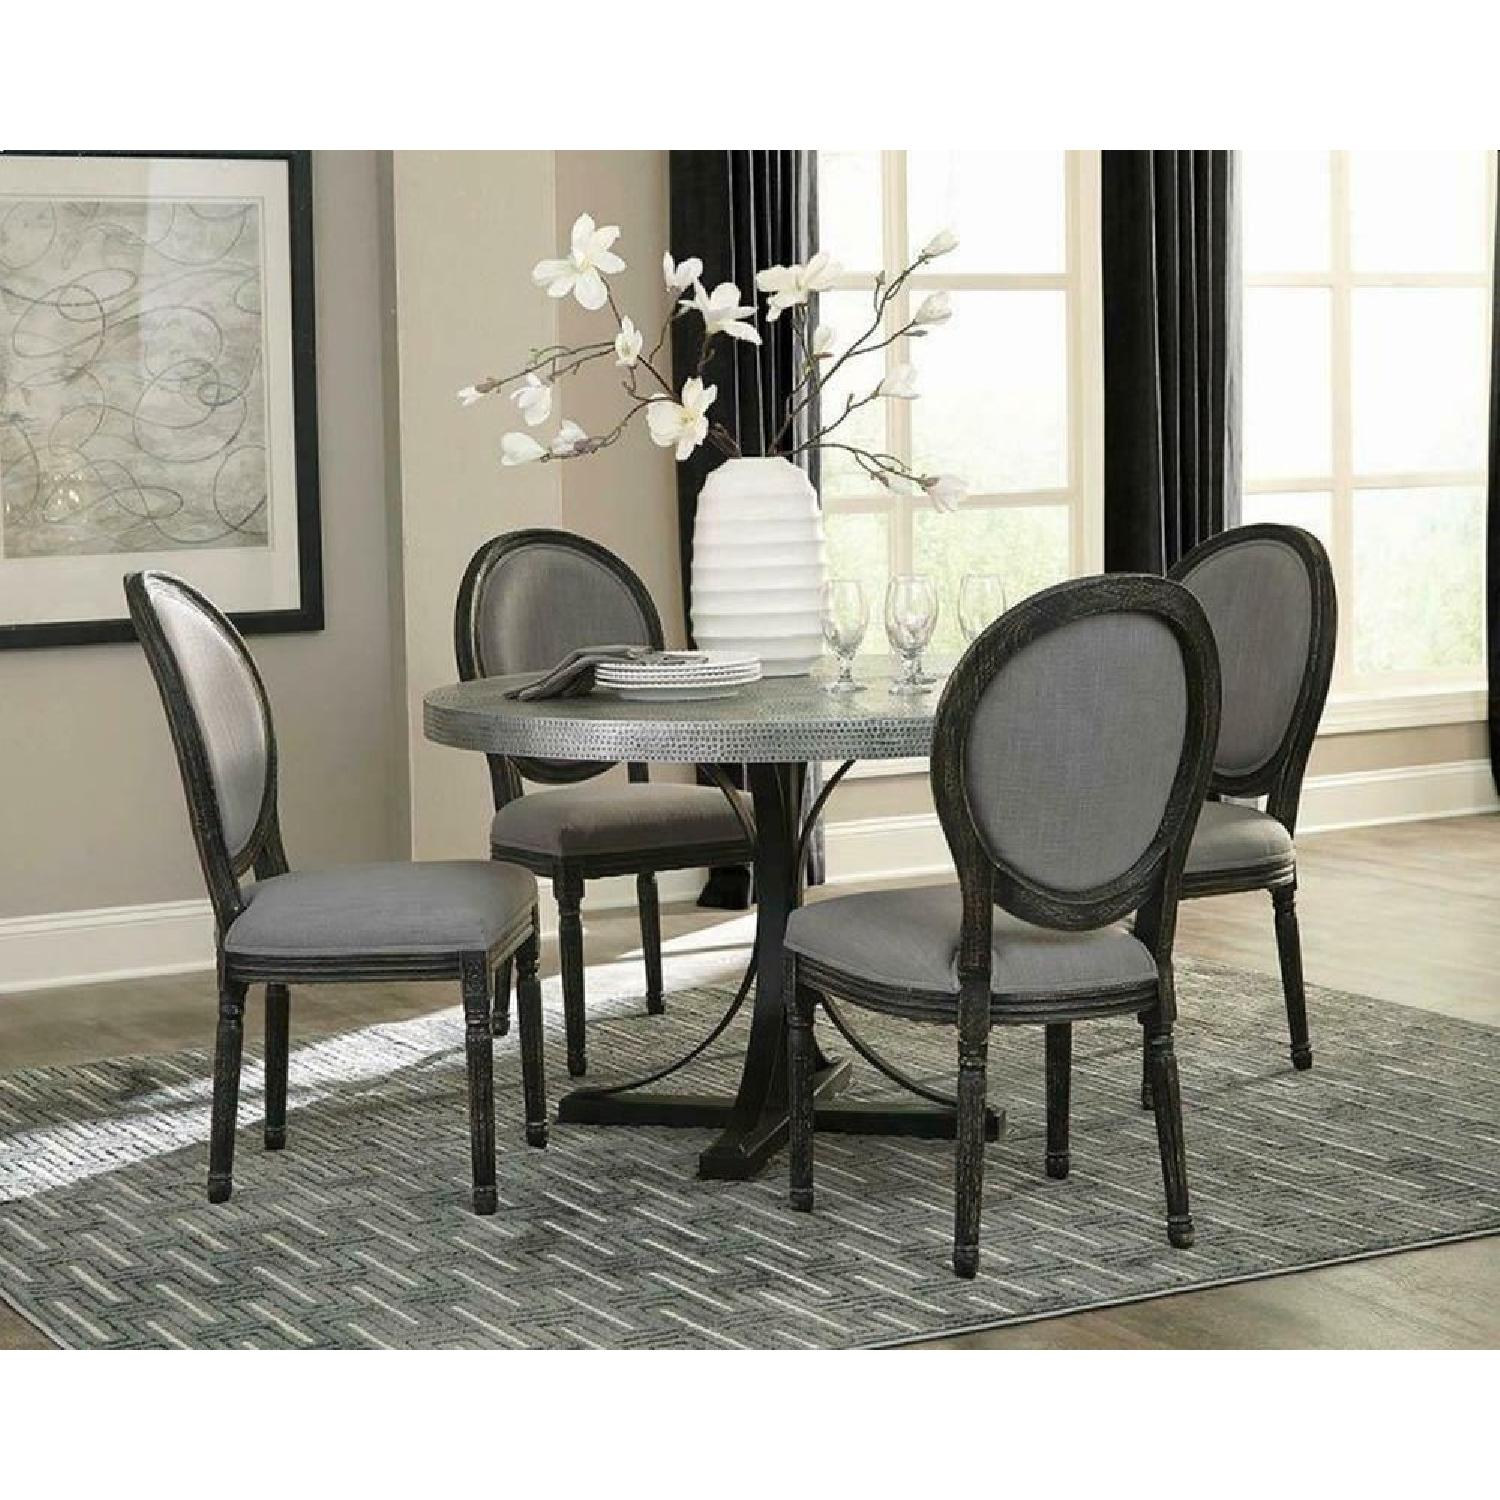 Bohemian Style Round Dining Table w/ Hand-Hammered Iron Top - image-1